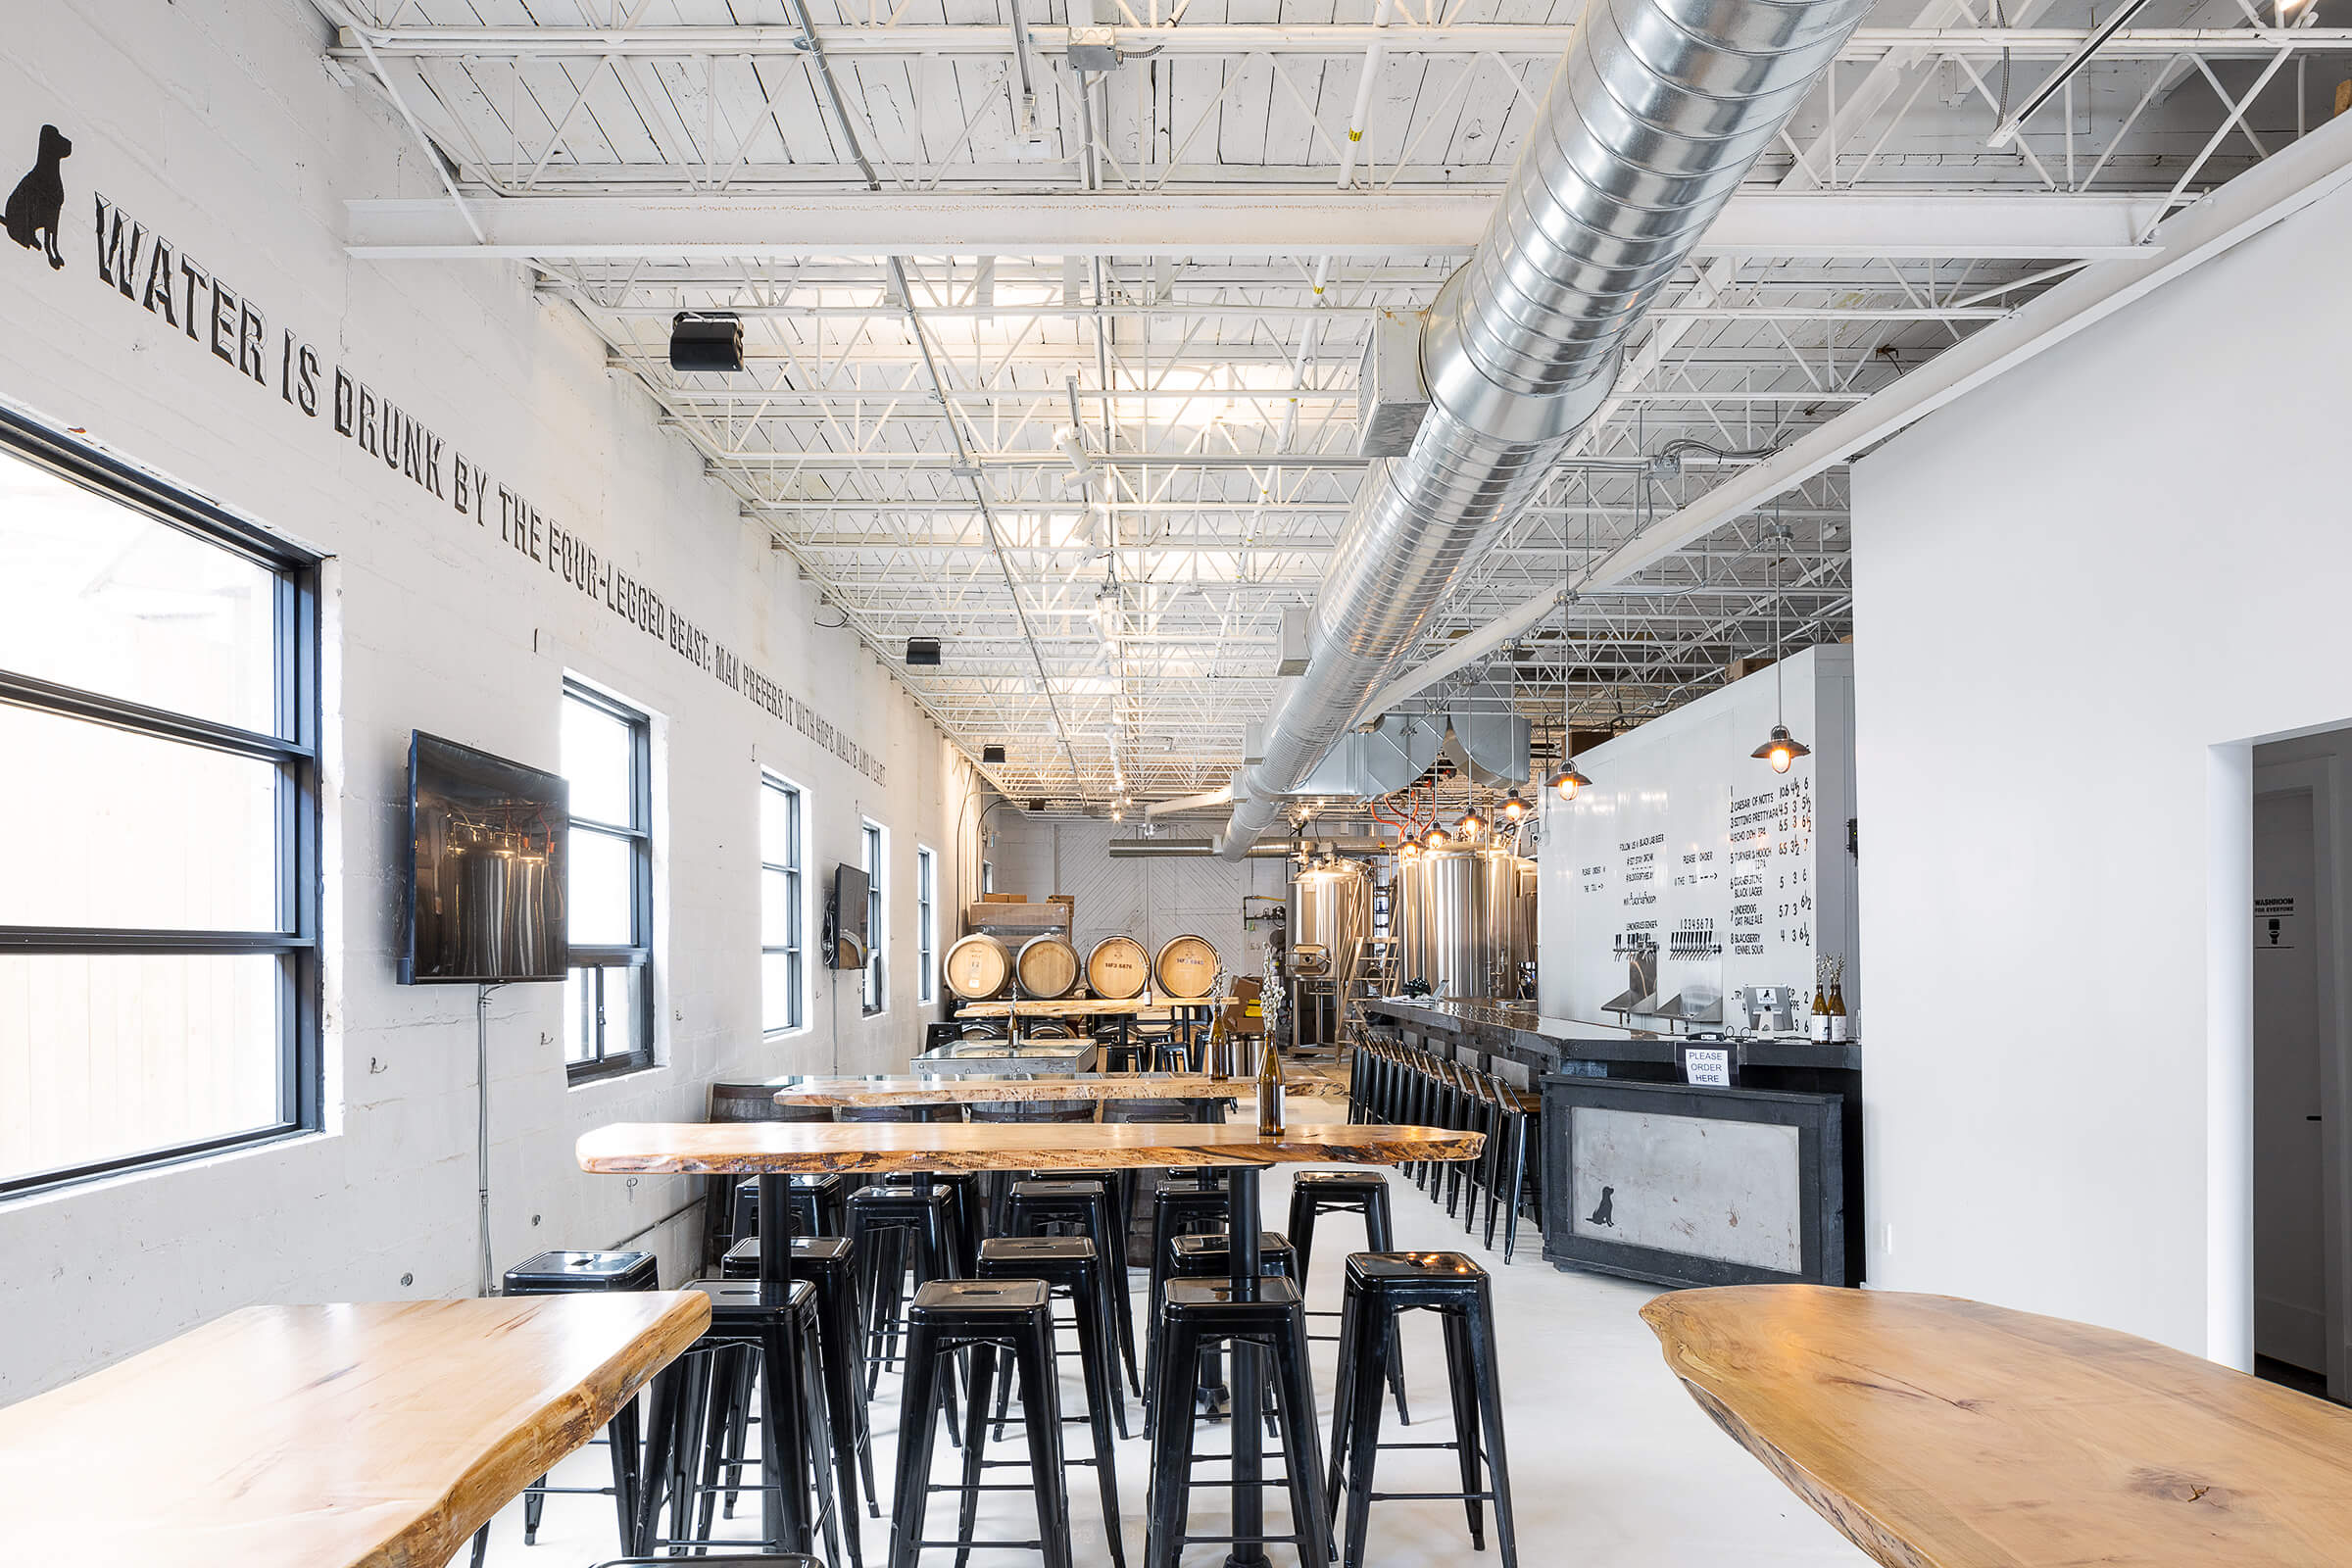 Toronto tap room interior photography